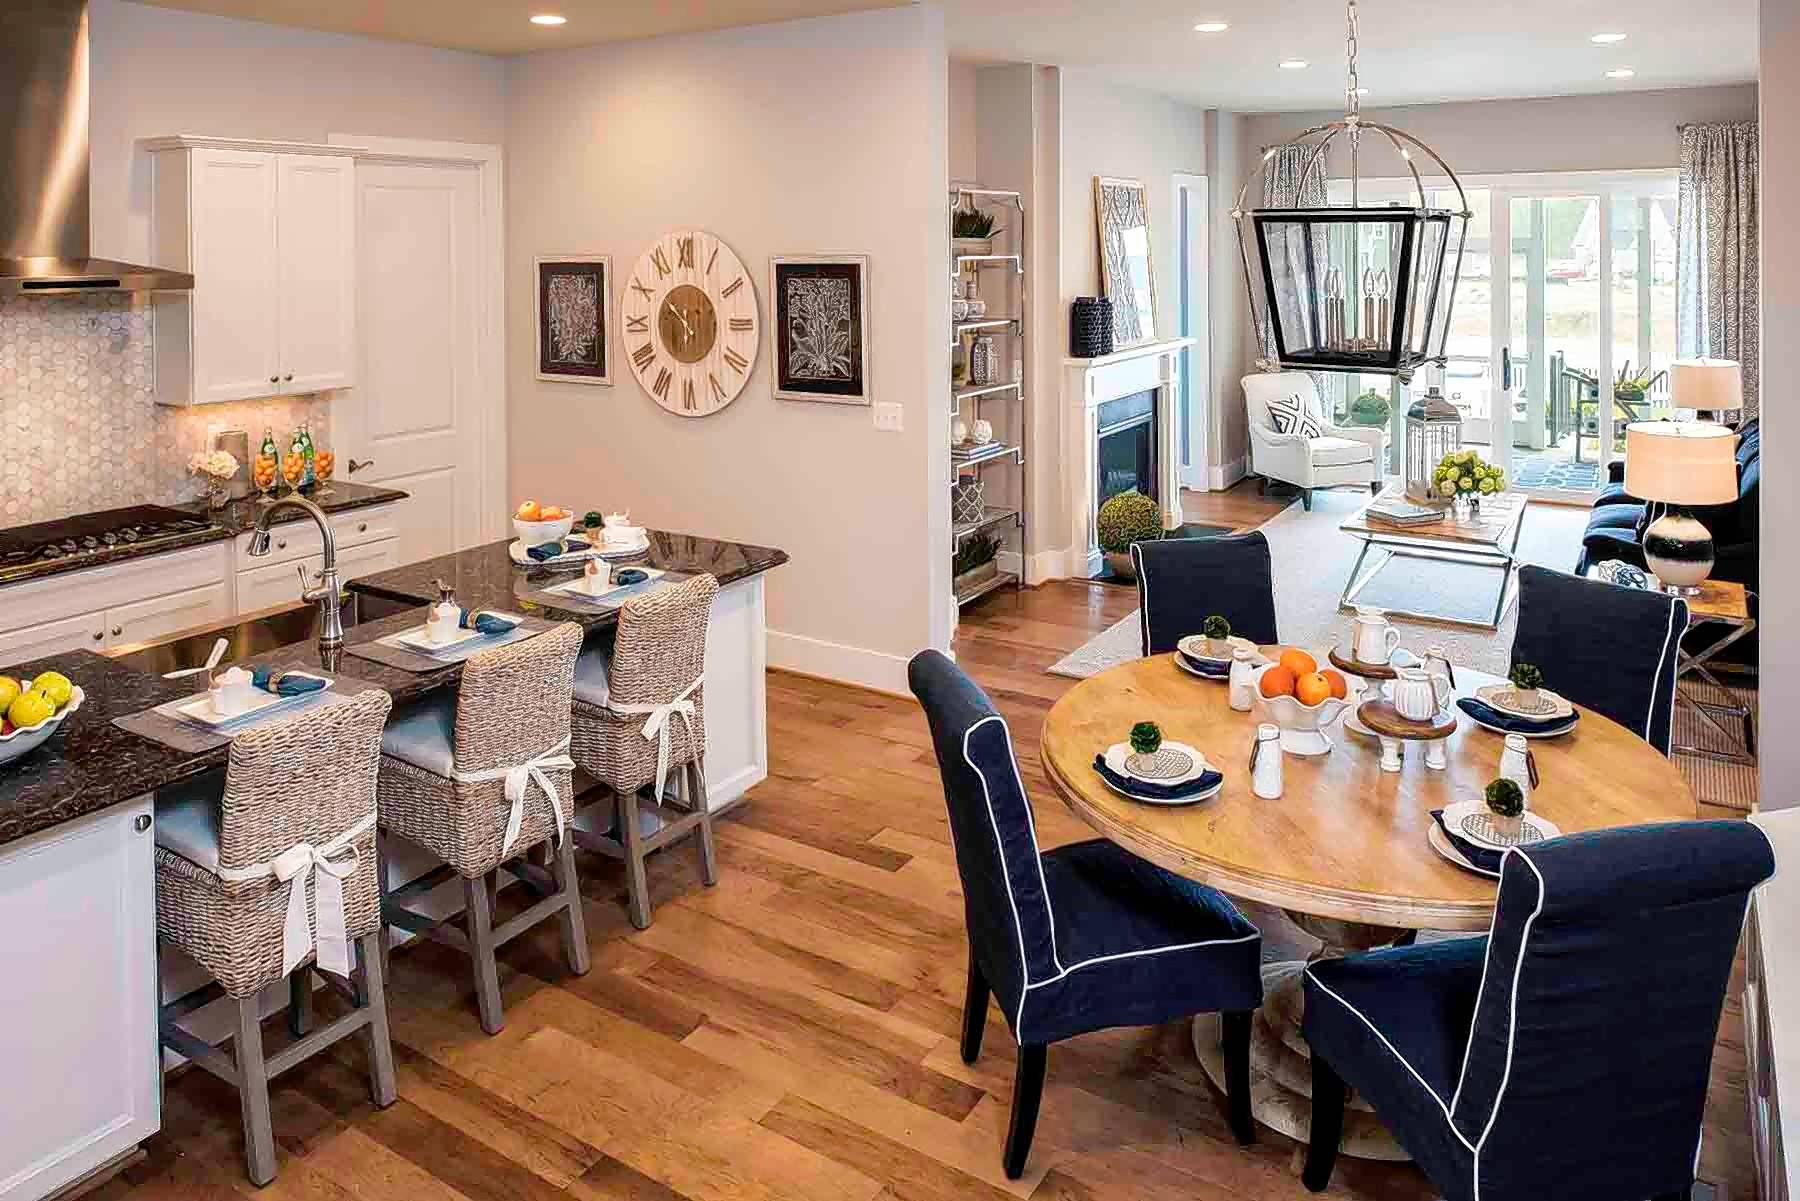 Across the nation you will find homebuilders who are developing active-adult communities within a half-hour of major urban areas. This cozy kitchen is in a Craftsman-style home being built in such a community in Maryland.